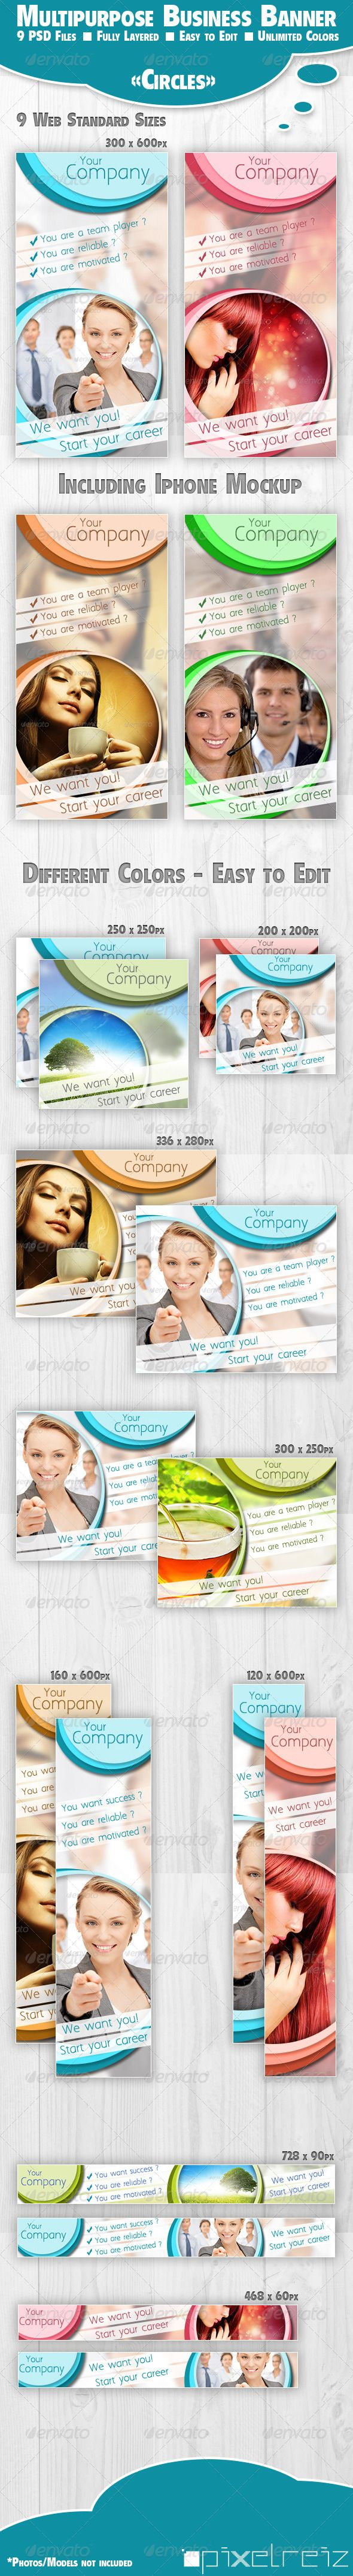 Multipurpose Business Banner Circles - Banners & Ads Web Elements